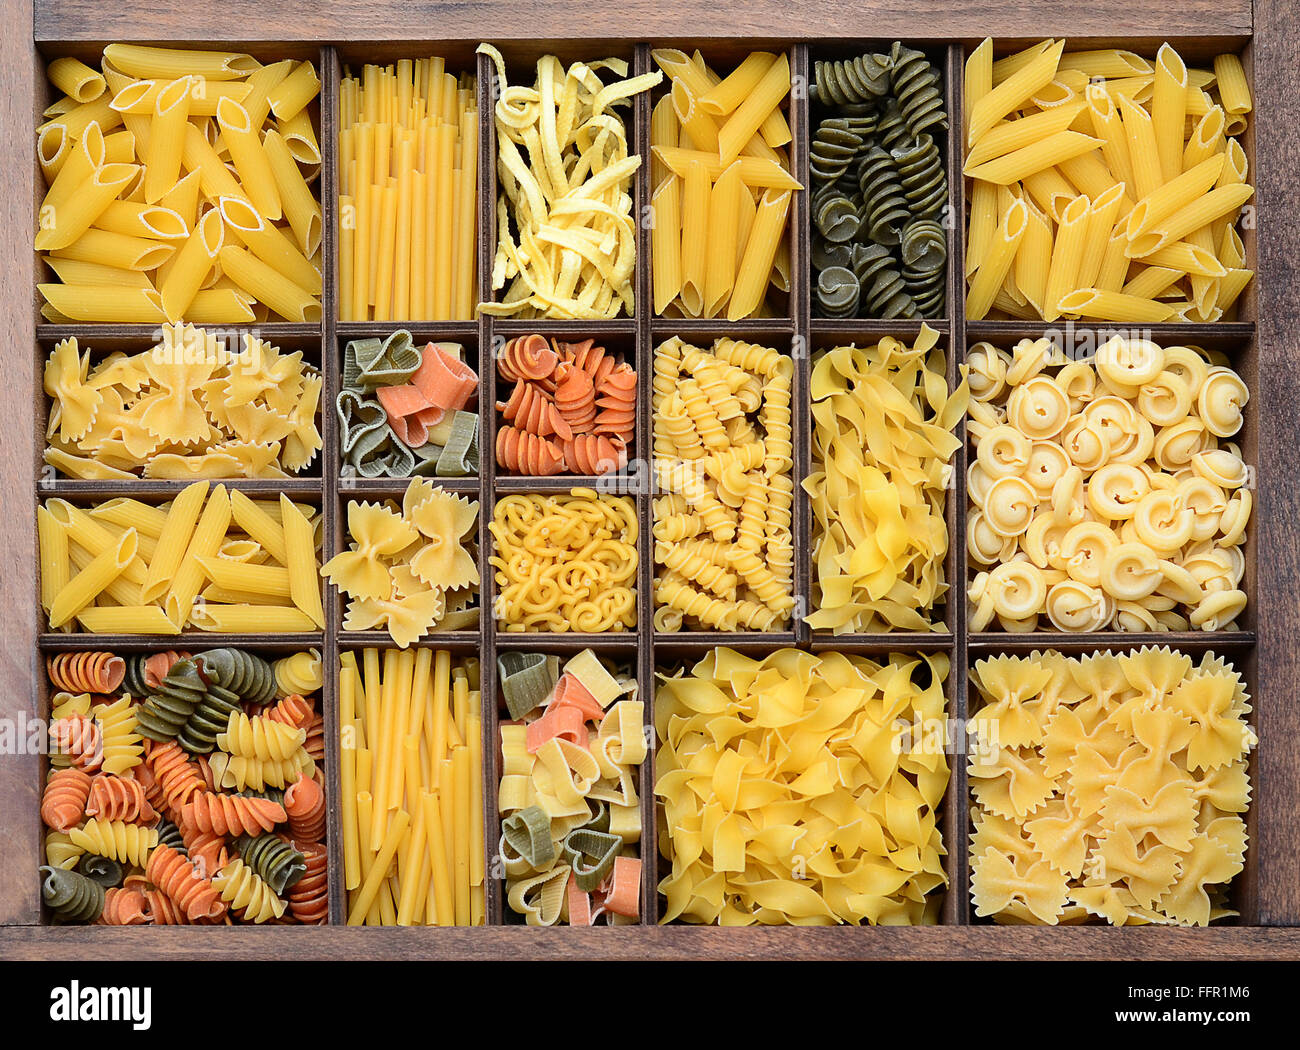 Pasta, various types of pasta in a type case - Stock Image